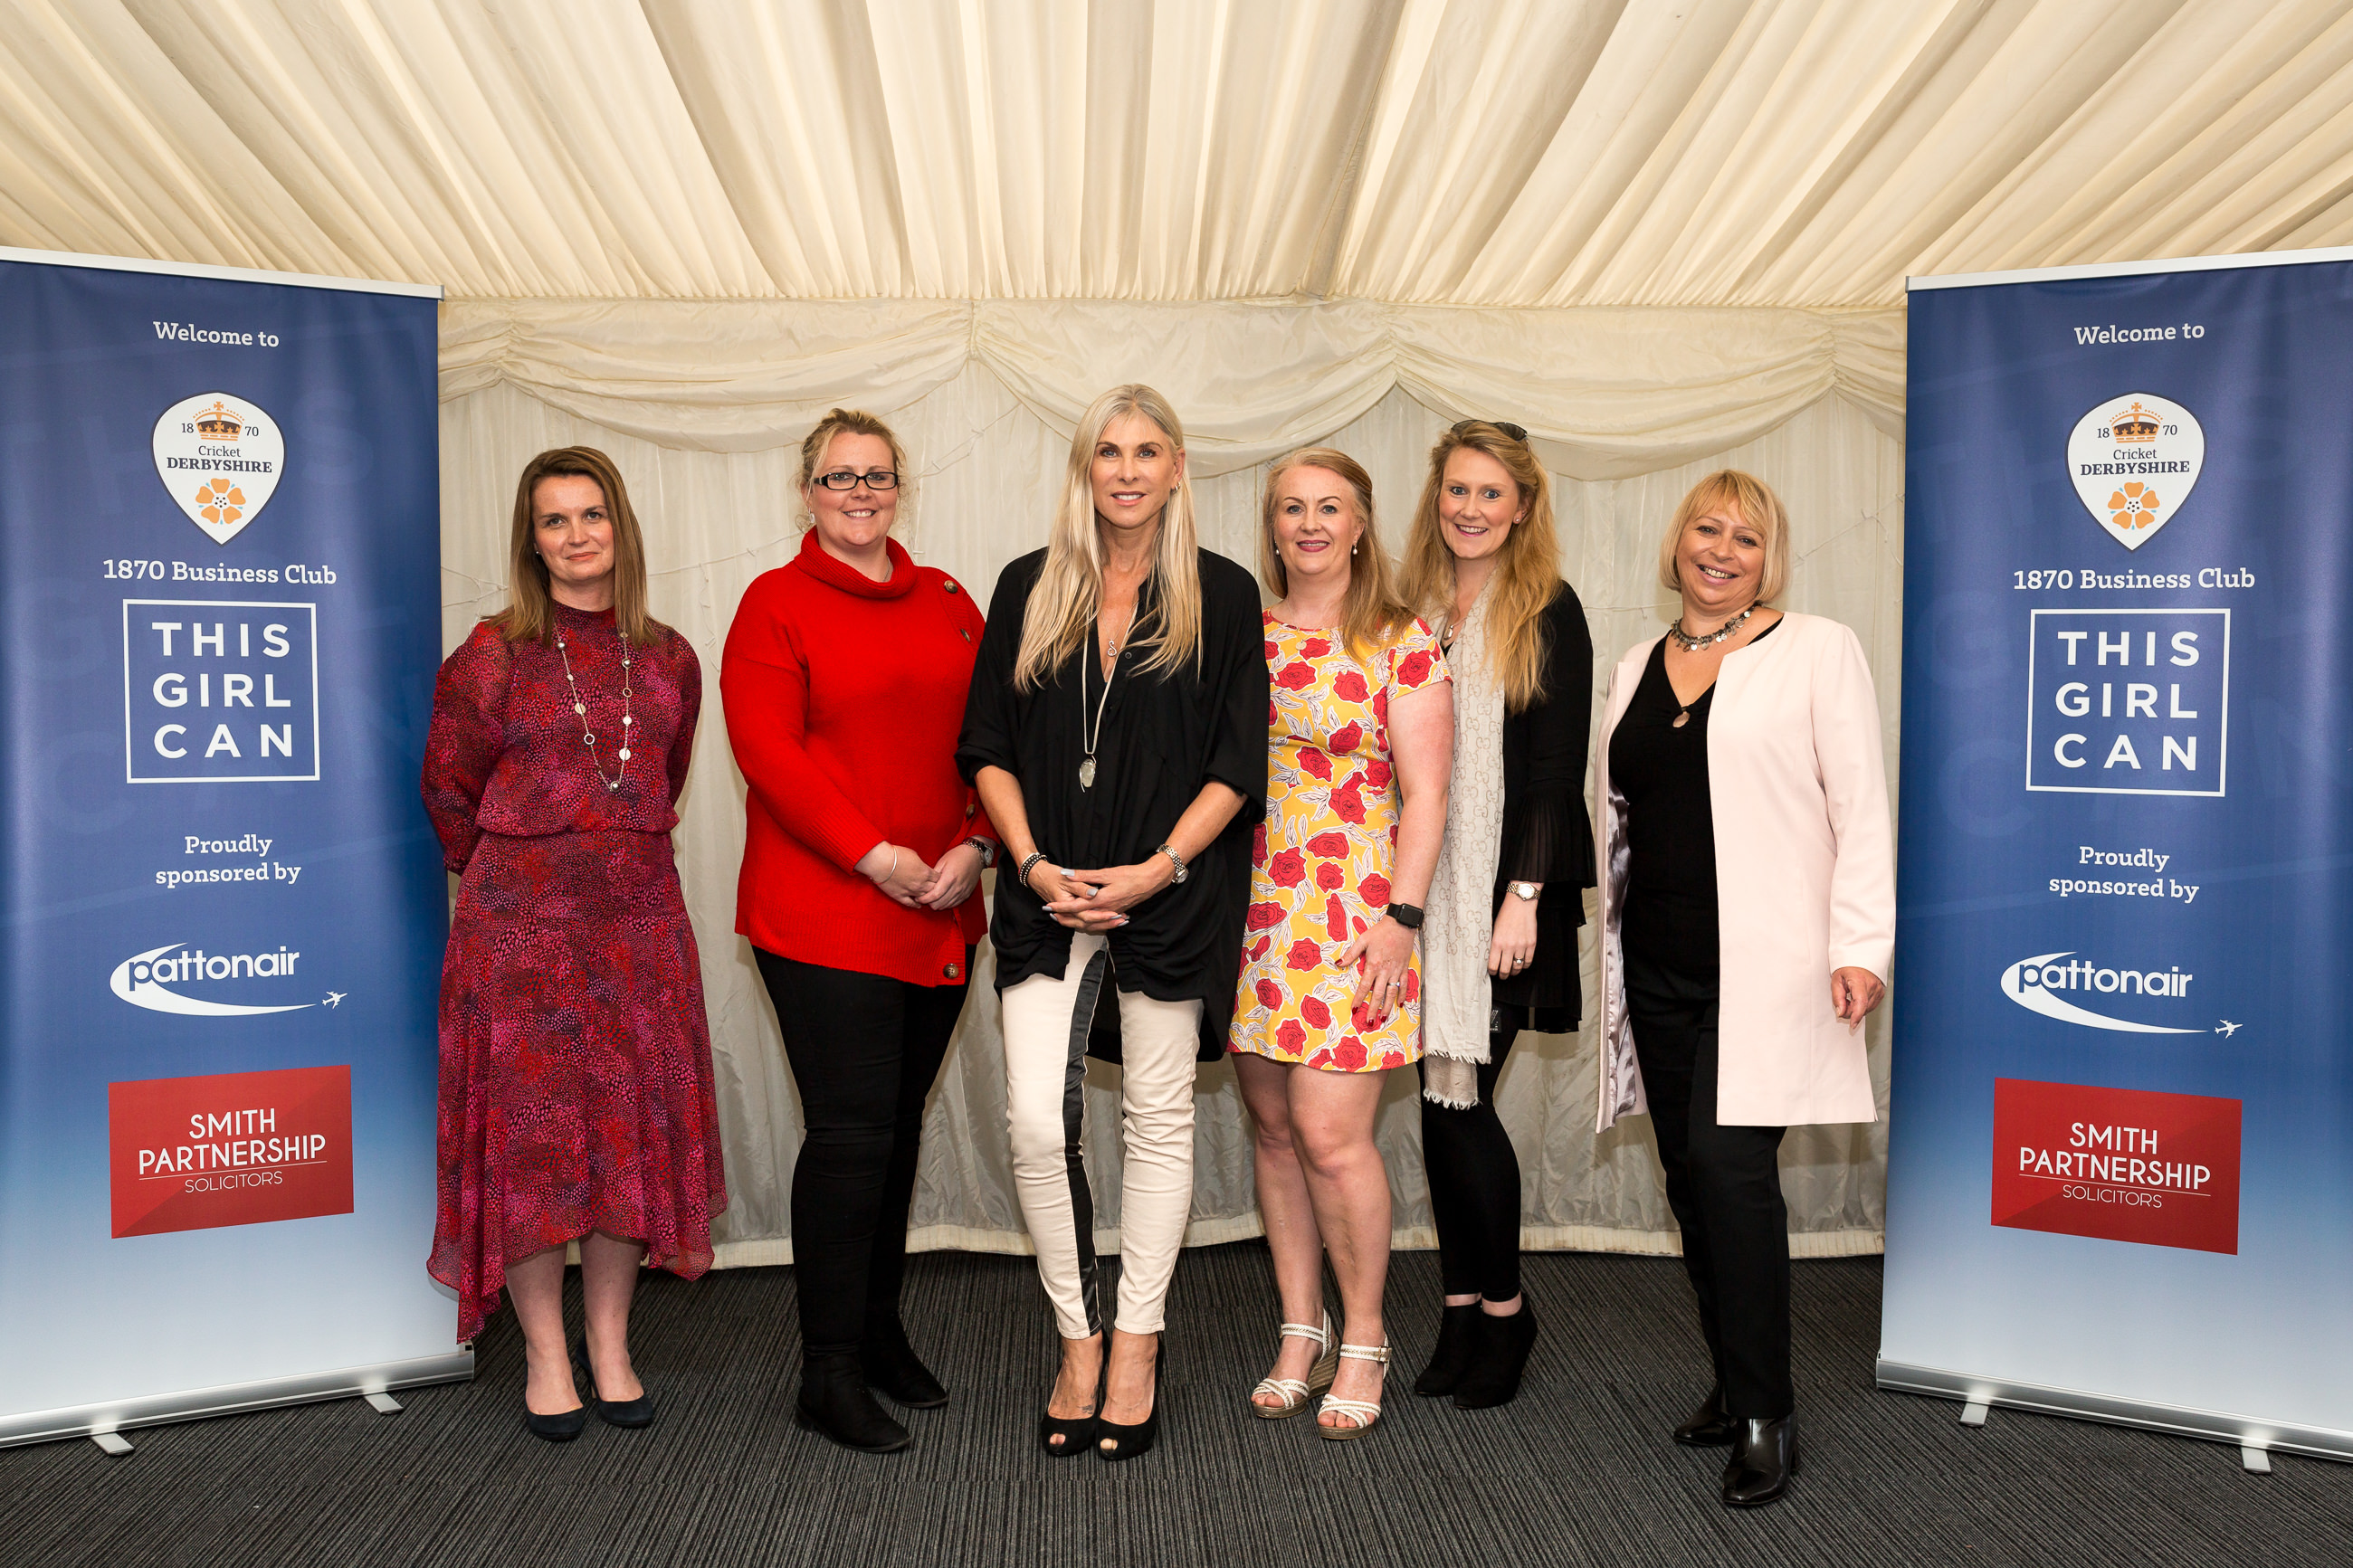 Pattonair celebrates women at 'This Girl Can' event with Sharron Davies MBE